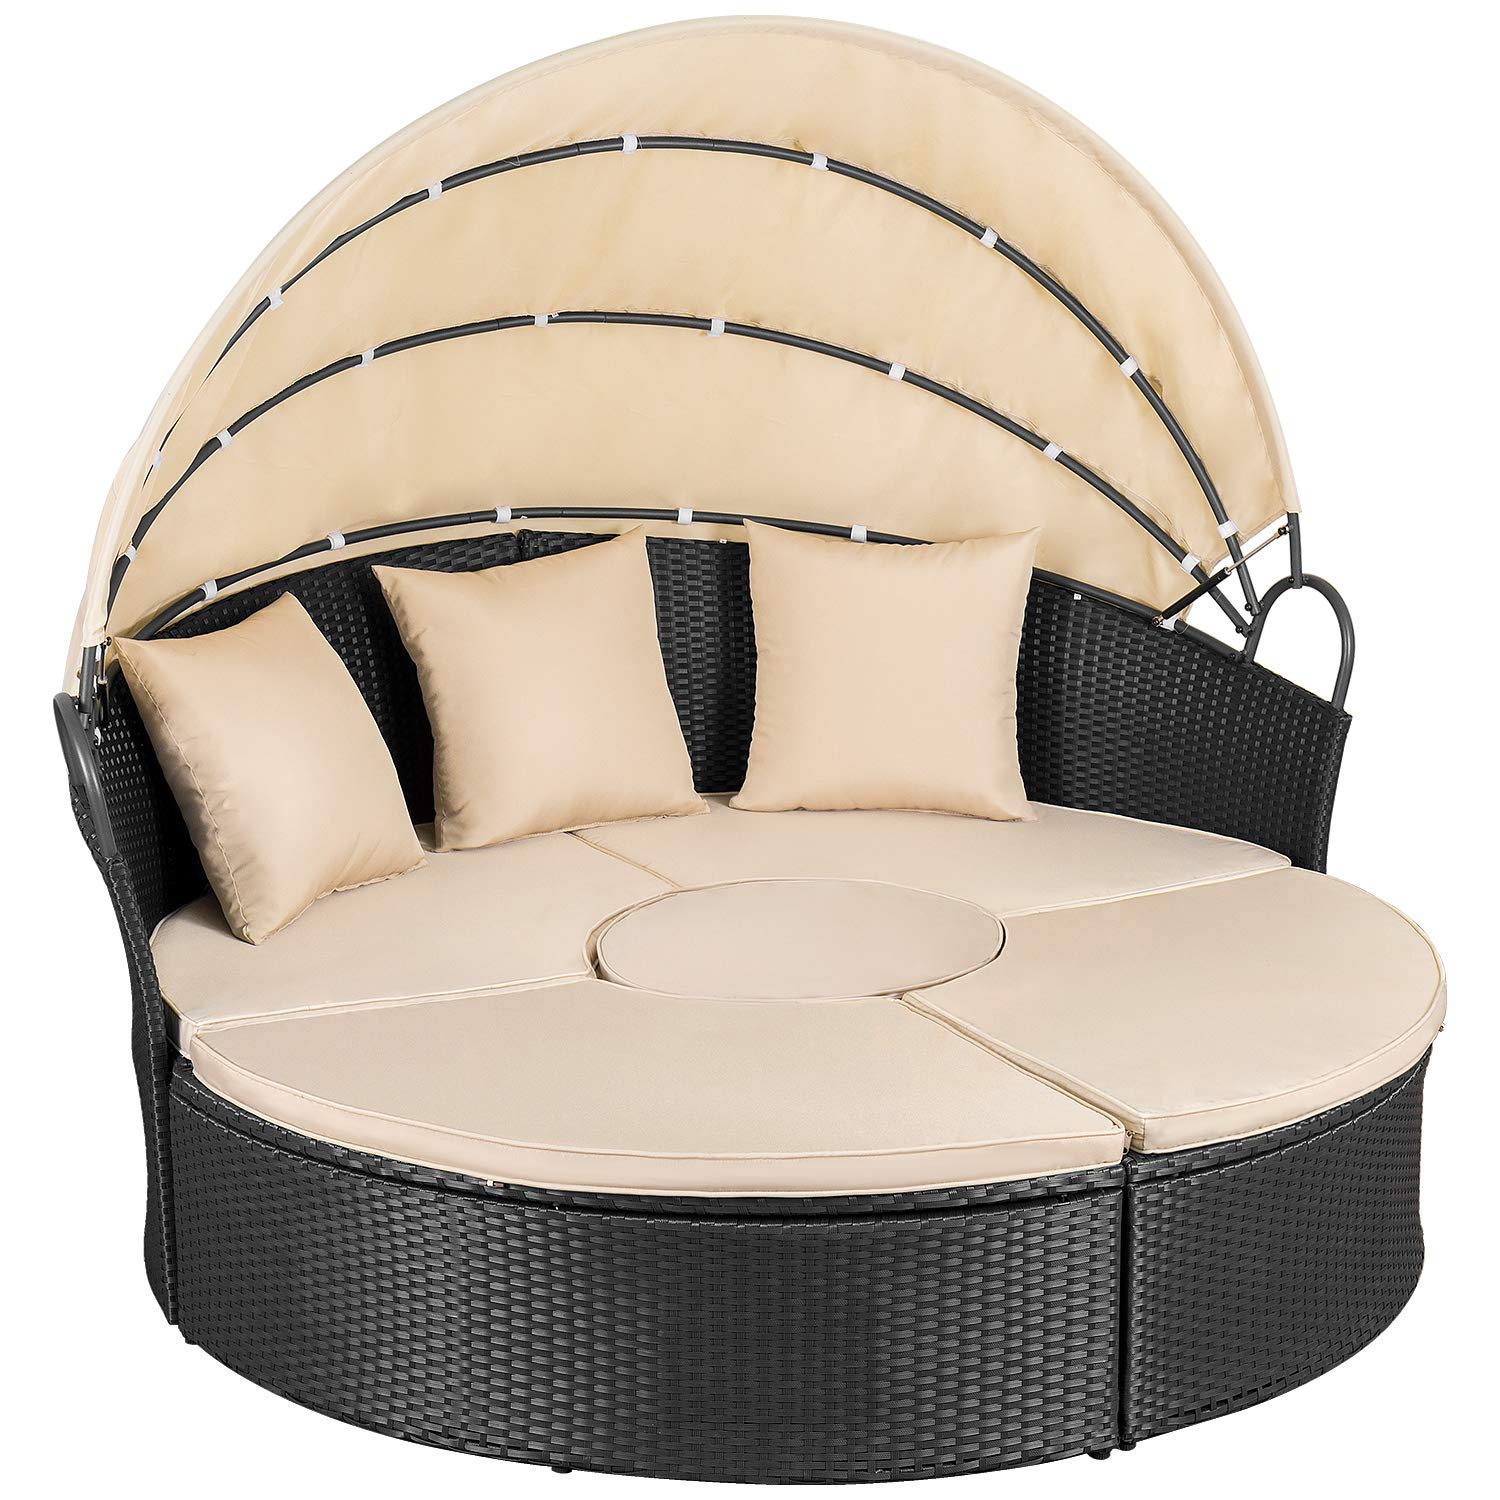 Homall Outdoor Patio Round Daybed with Retractable Canopy Wicker Furniture Sectional Seating with Table and Washable Cushions for Patio Backyard Porch Pool Patio Daybed Separated Seating Beige